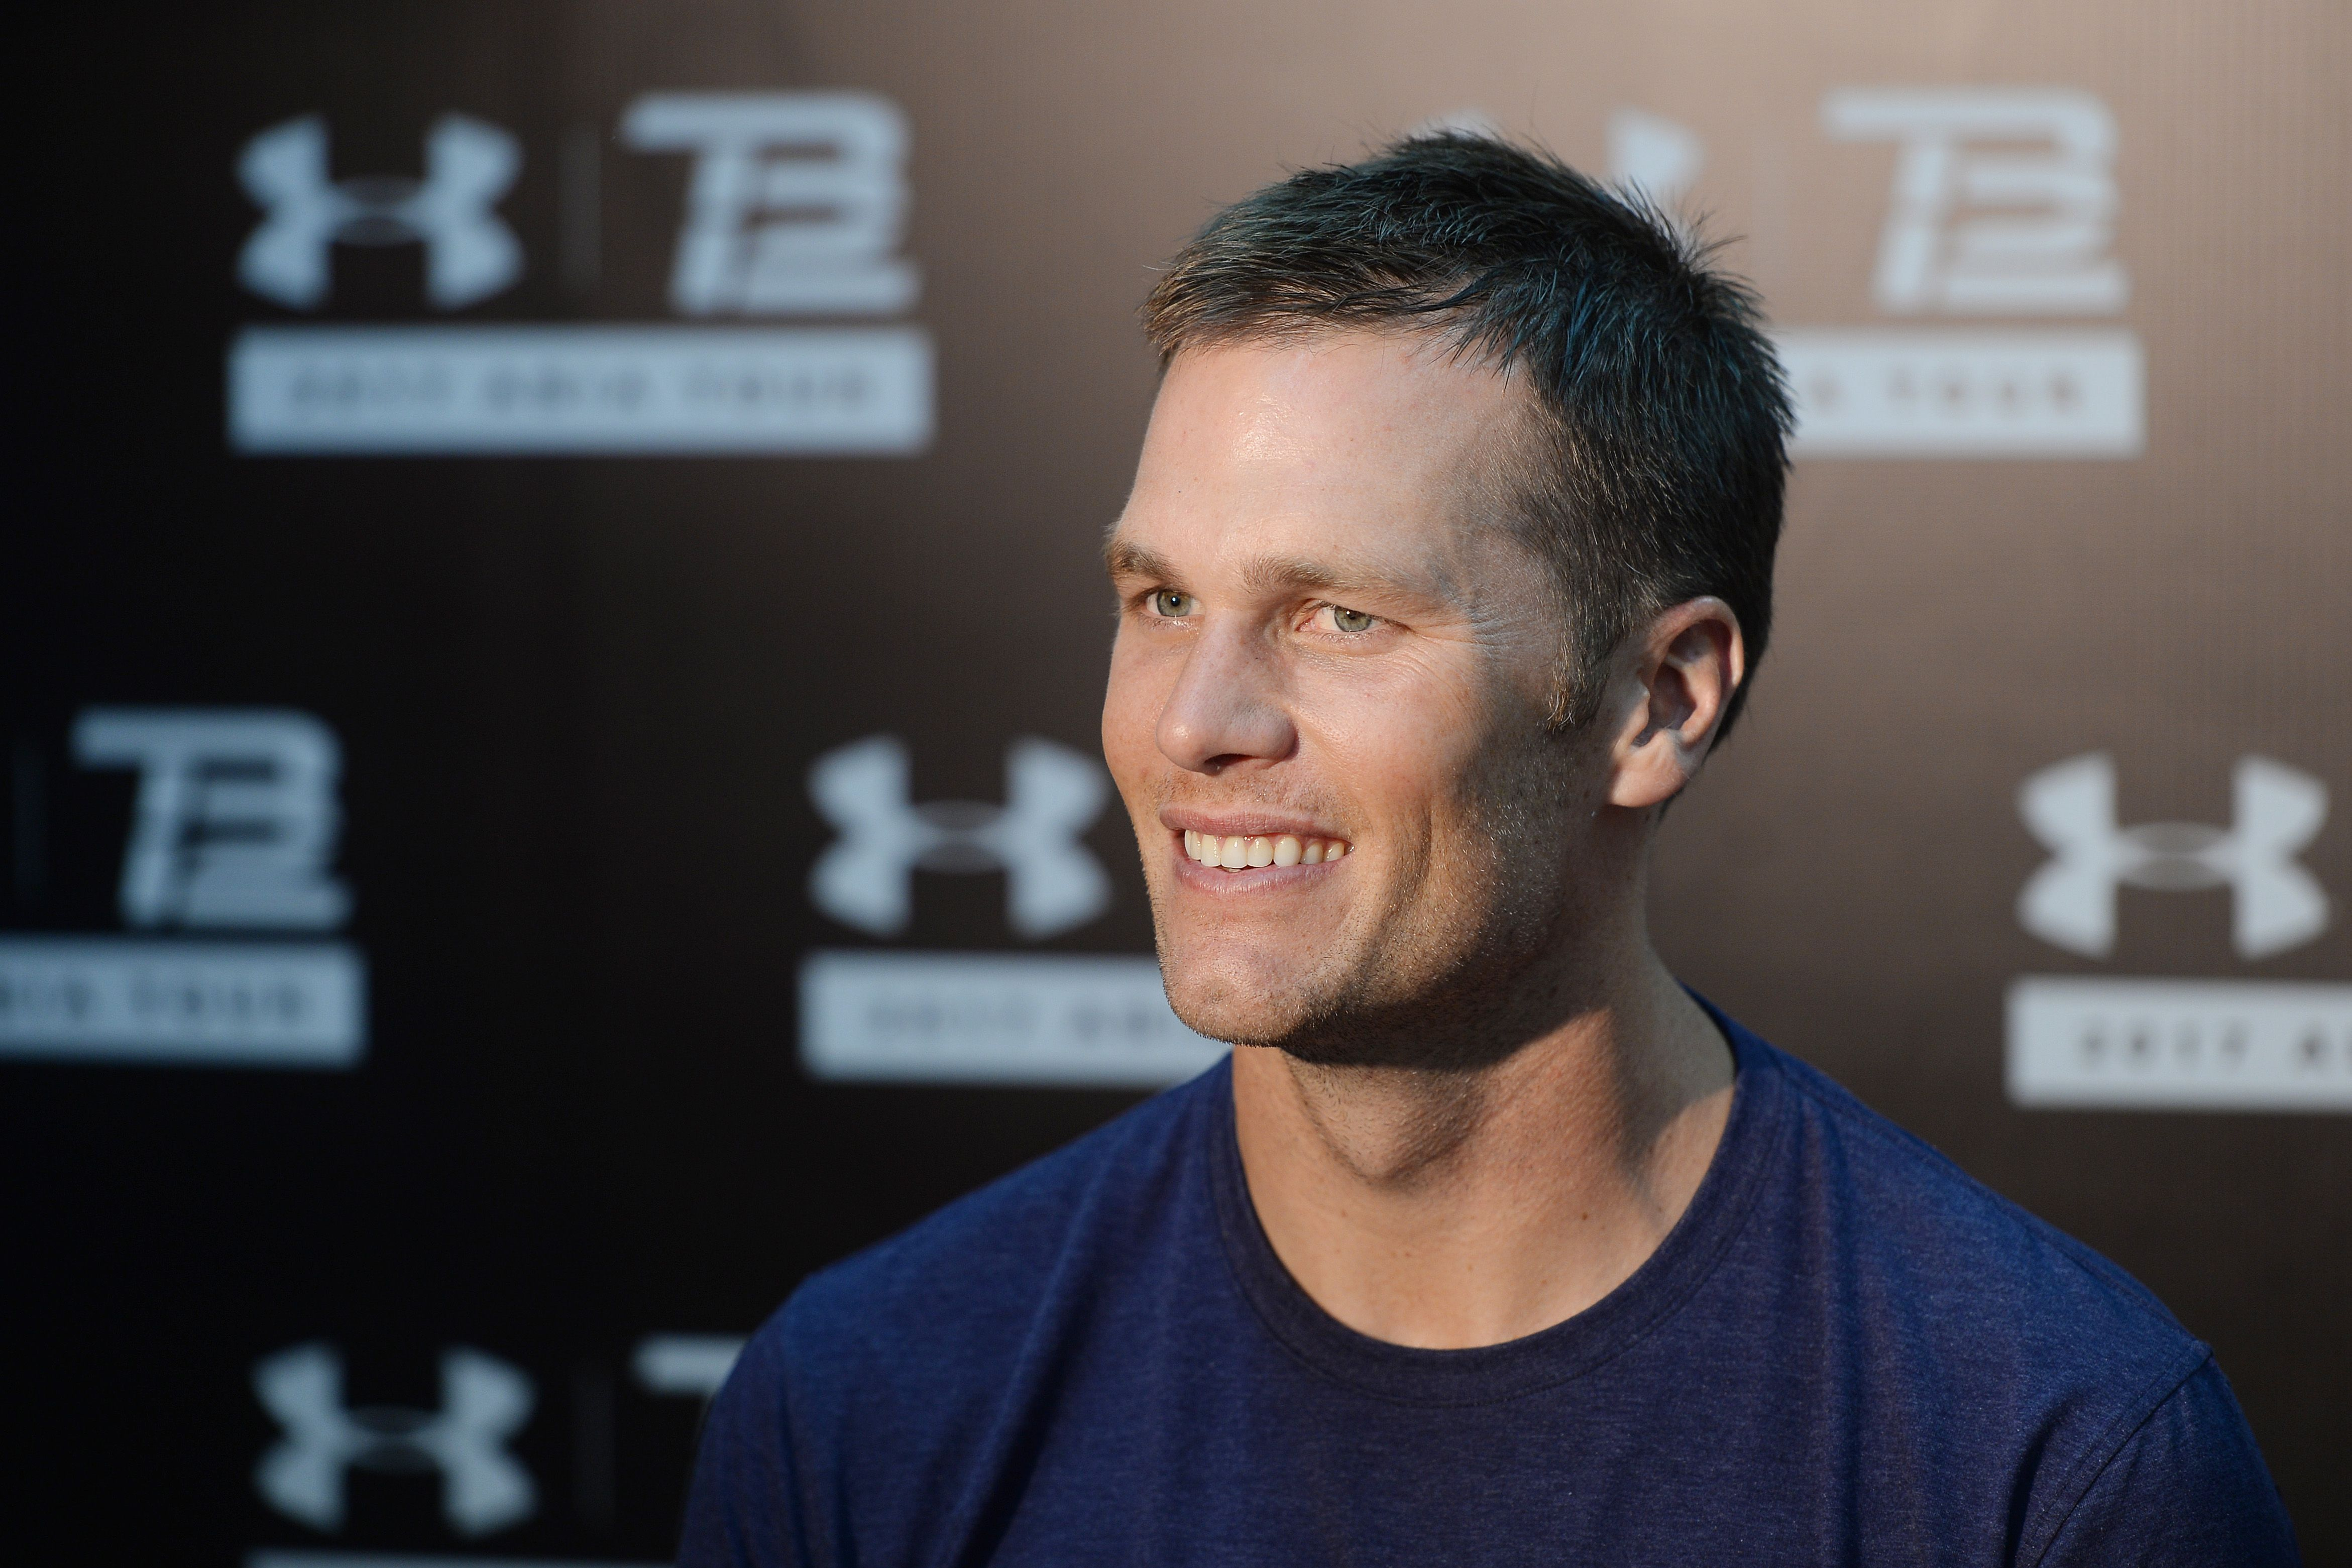 Tom Brady Says These 5 Tips Will Make You Successful in